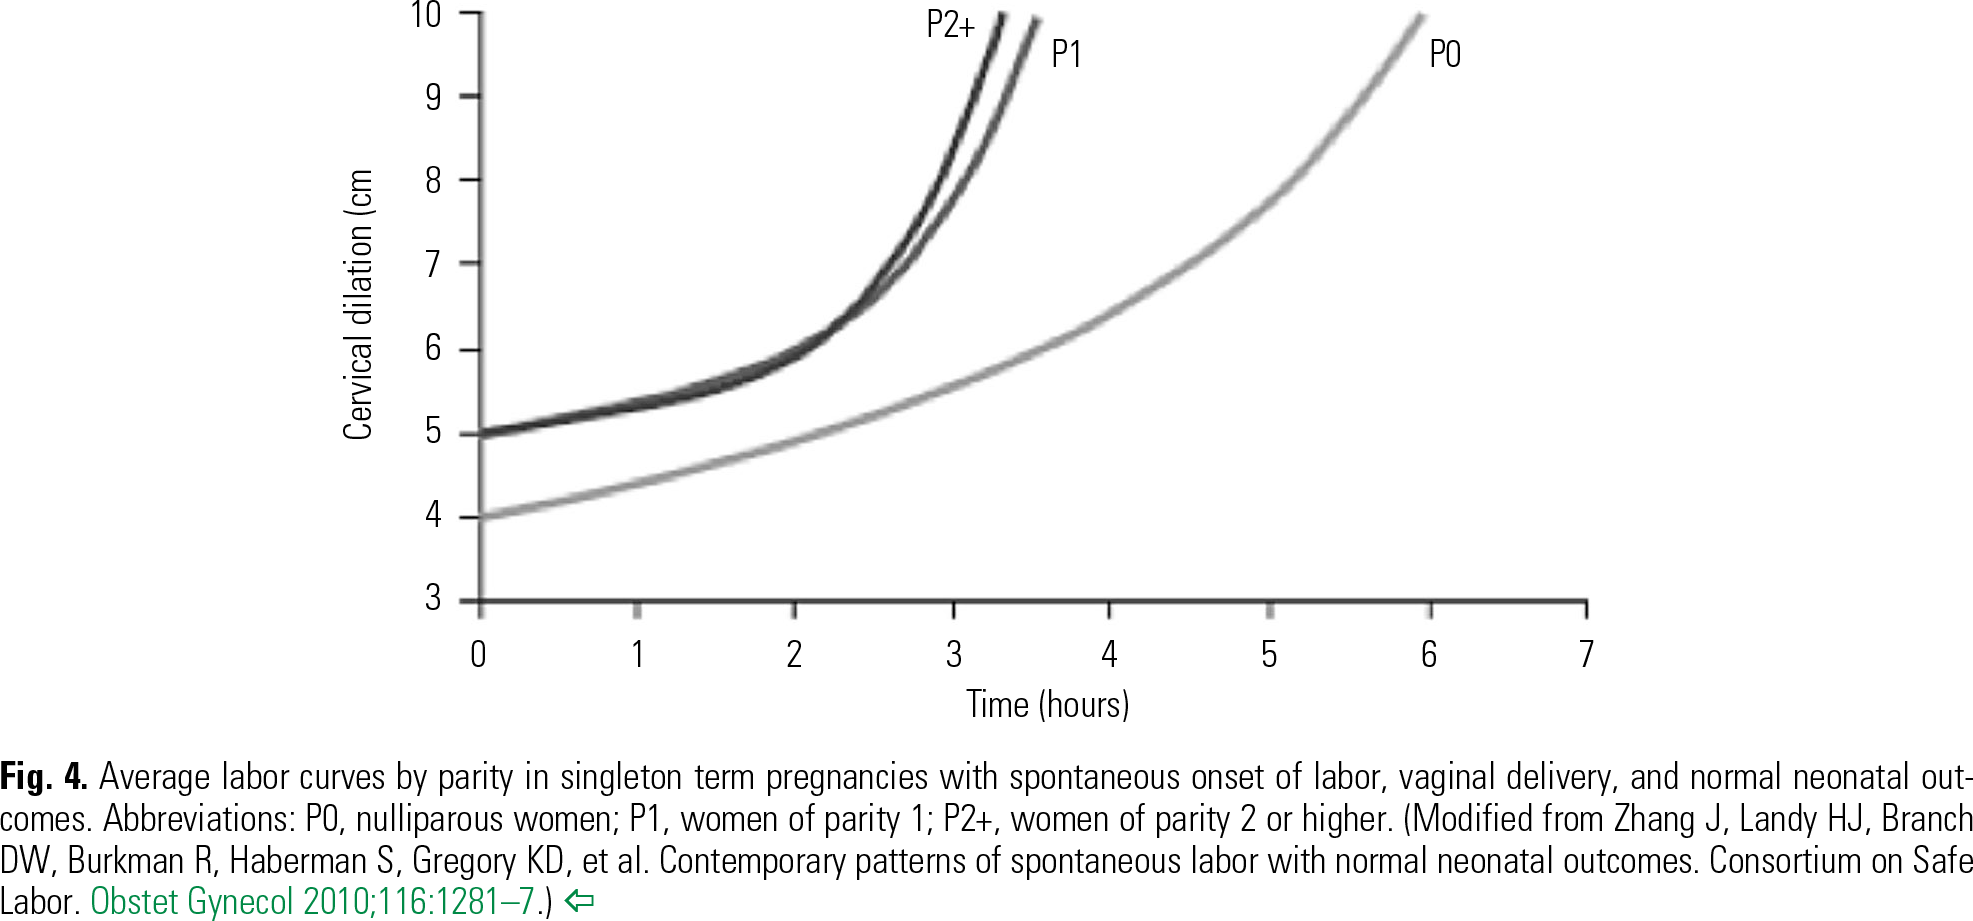 Fig. 4 Average labor curves by parity in singleton term pregnancies with spontaneous onset of labor, vaginal delivery, and normal neonatal outcomes. Abbreviations: P0, nulliparous women; P1, women of parity 1; P2+, women of parity 2 or higher. (Modified from Zhang J, Landy HJ, Branch DW, Burkman R, Haberman S, Gregory KD, et al. Contemporary patterns of spontaneous labor with normal neonatal outcomes. Consortium on Safe Labor. Obstet Gynecol 2010;116:1281–7.)